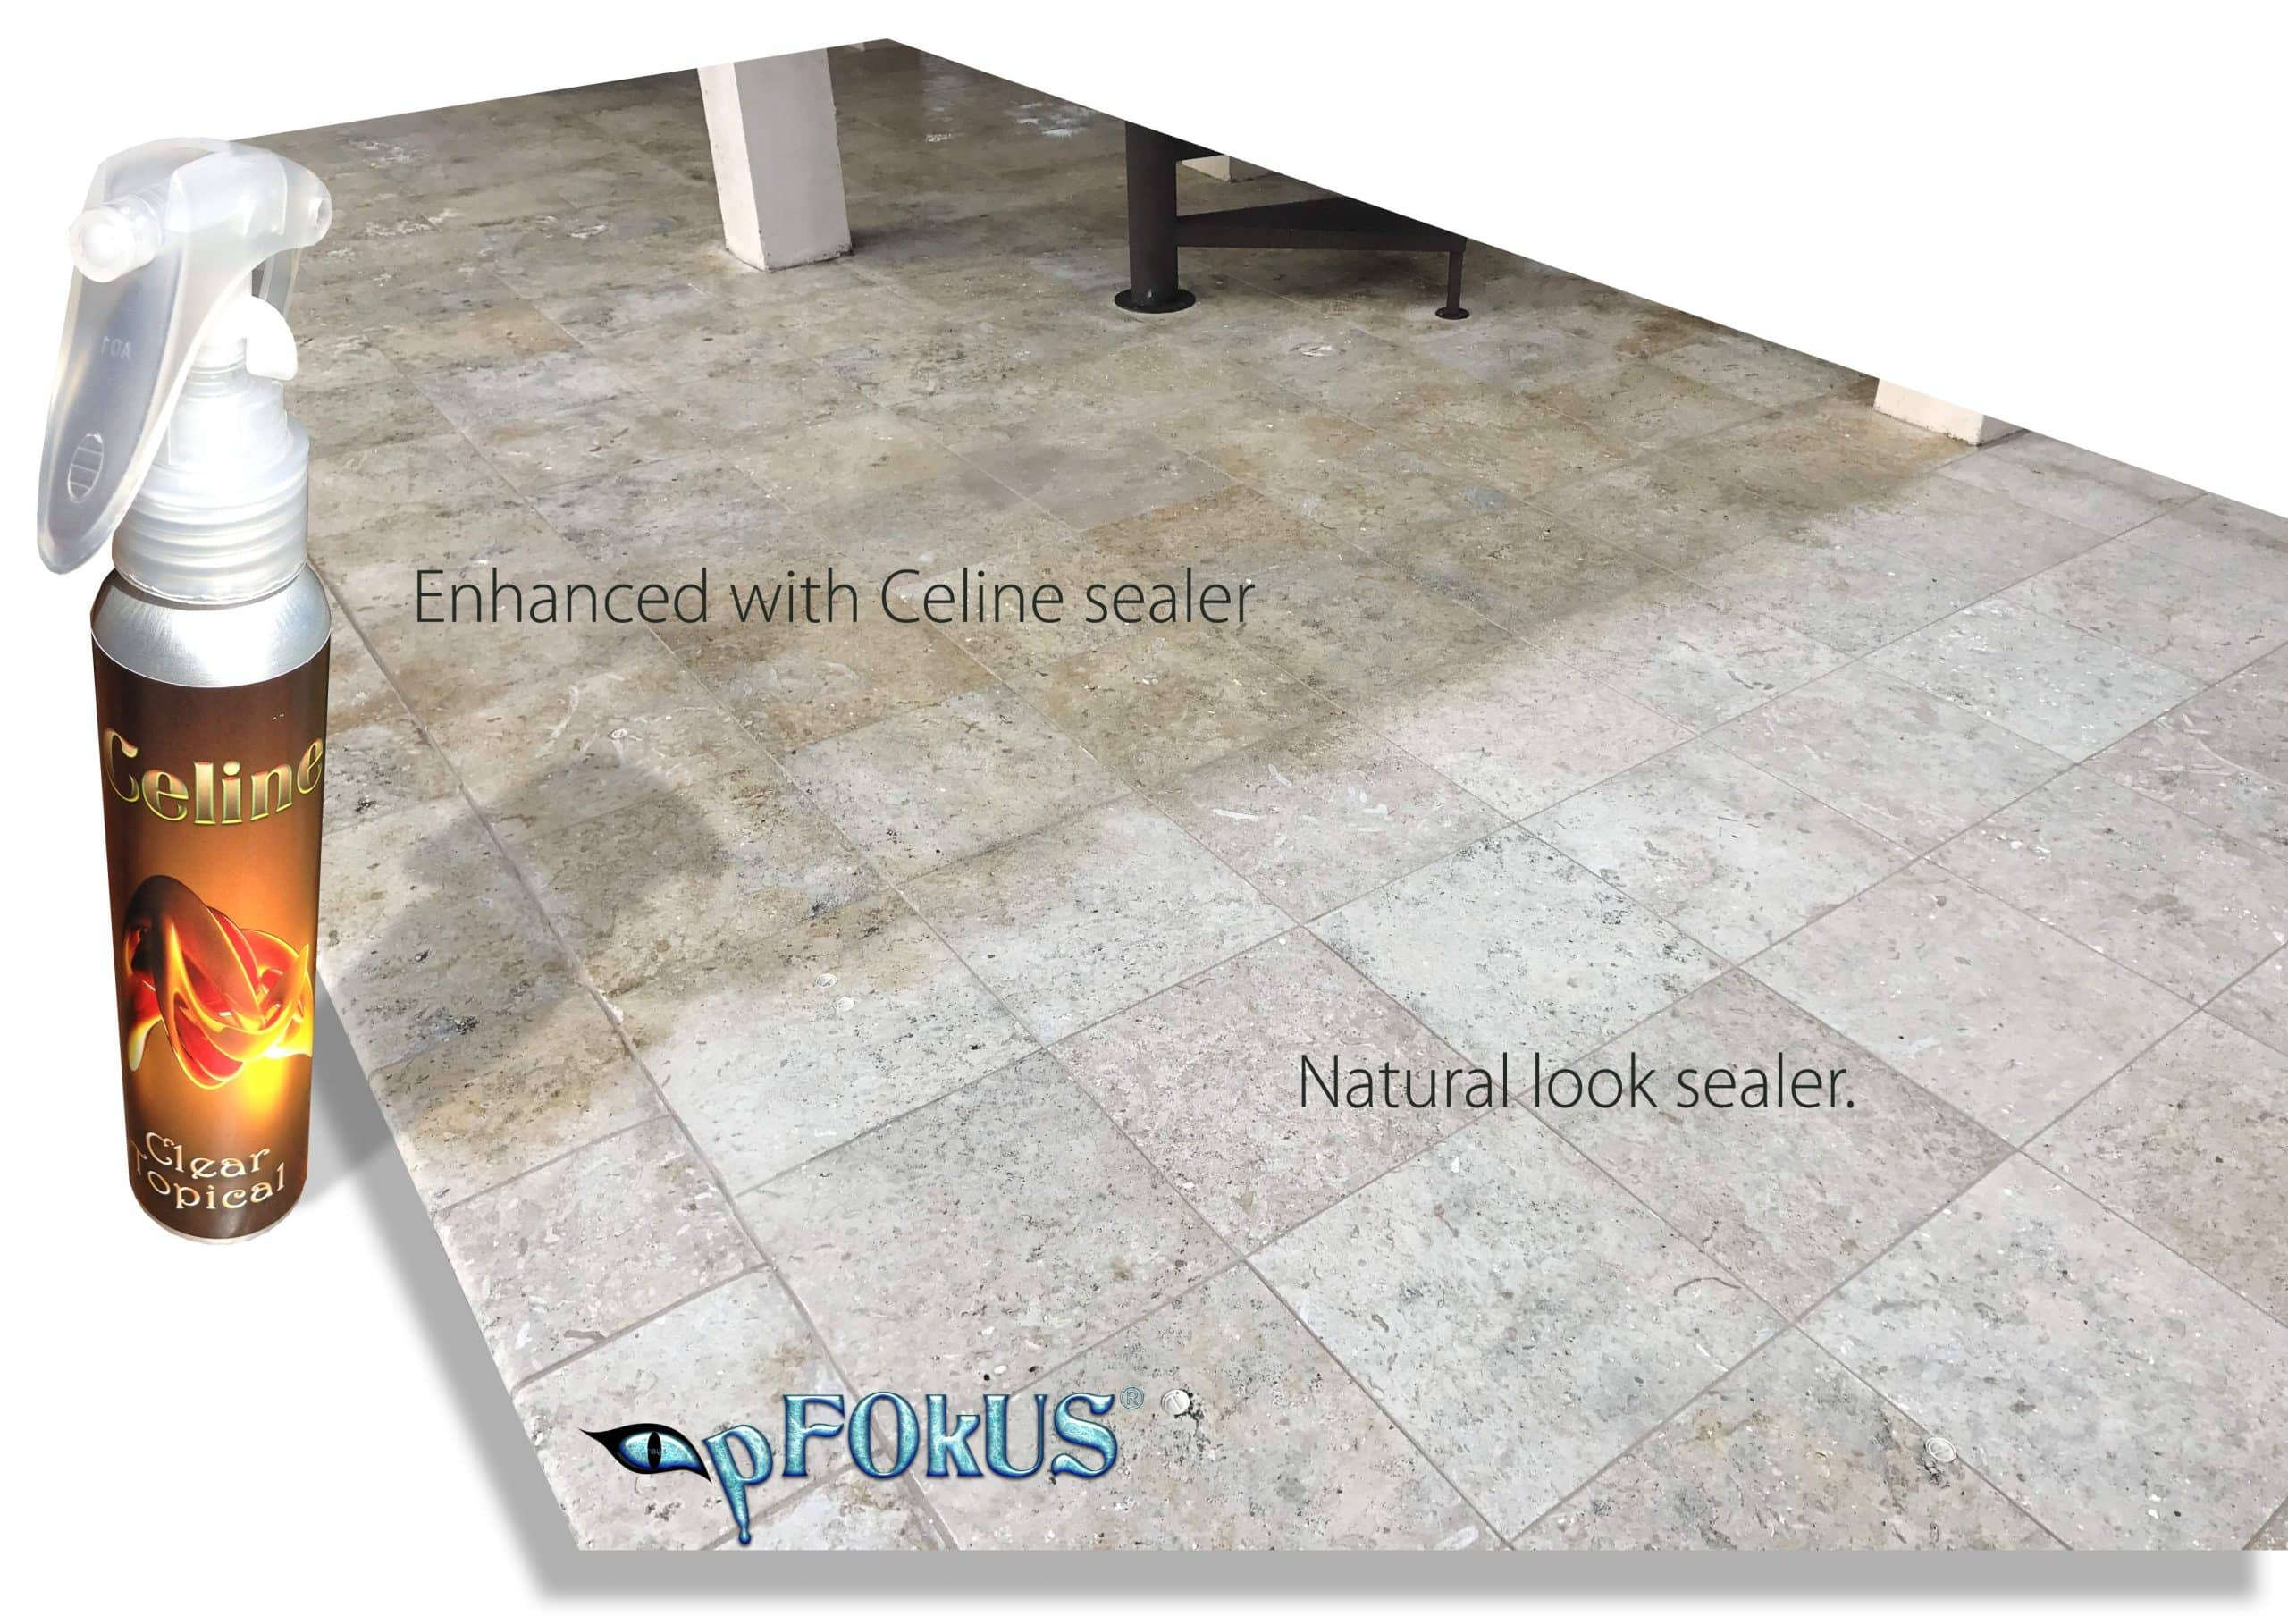 pFOkUS Enhance Celine Sealer Travertine Limestone